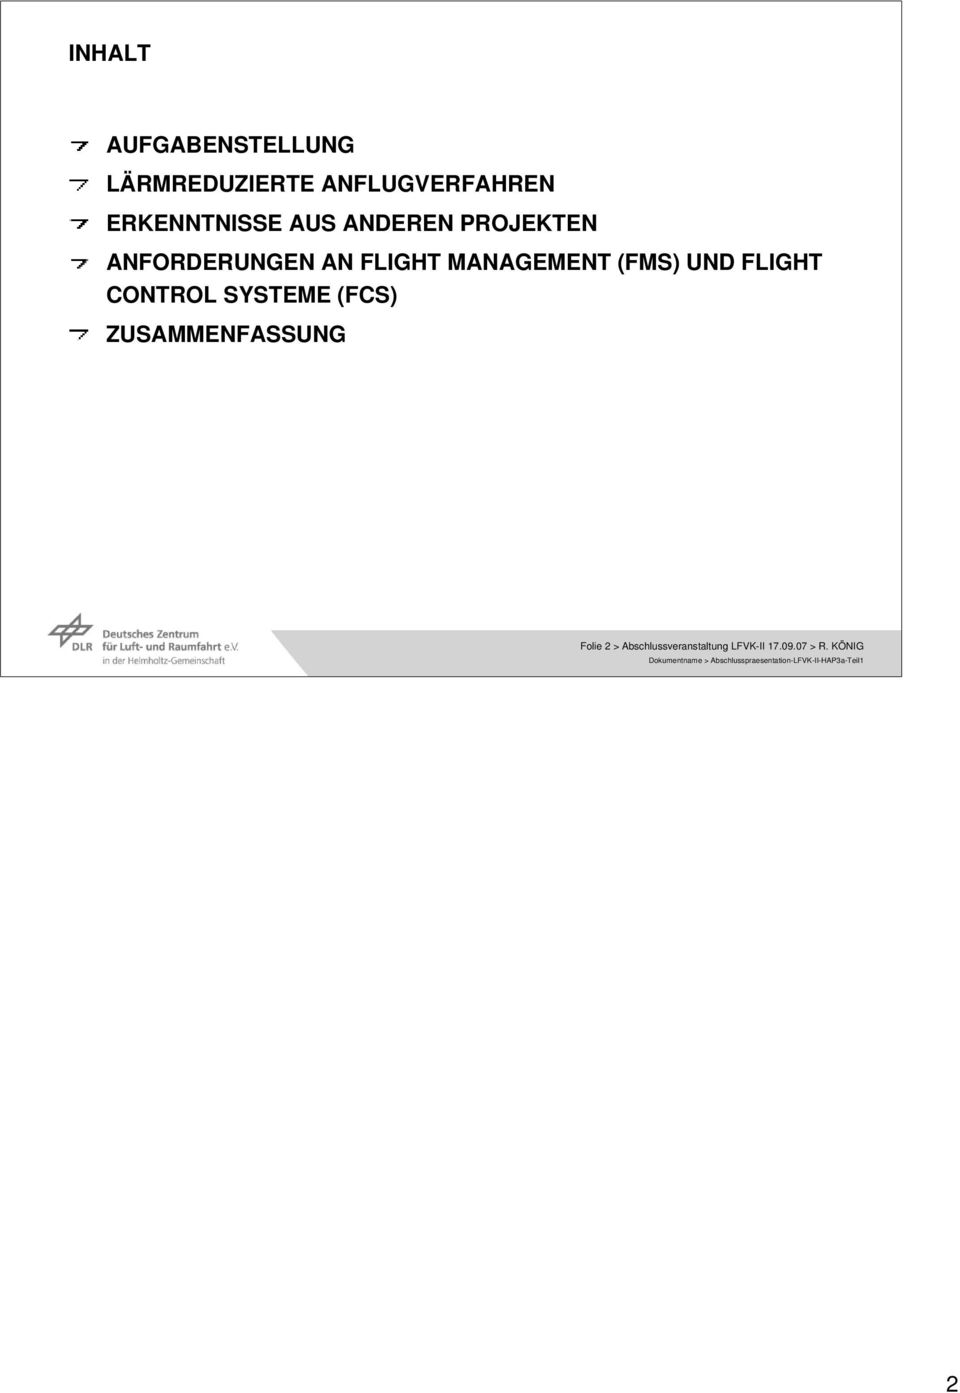 MANAGEMENT (FMS) UND FLIGHT CONTROL SYSTEME (FCS)